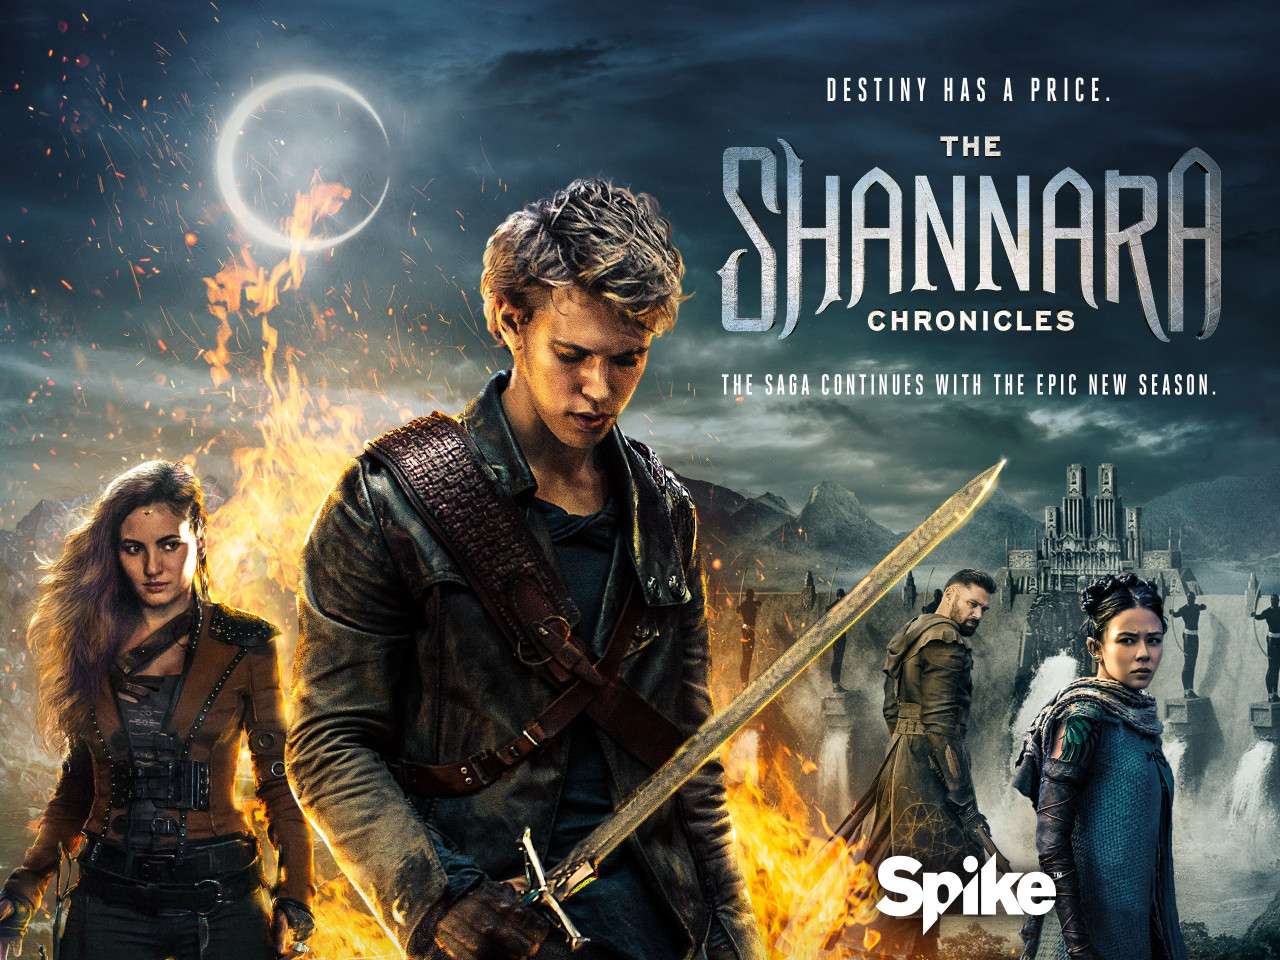 In the Shannara Chronicles, the druid Allanon is mentor to Will Ohmsford (middle, played by Austin Butler) and his daughter Mareth (right).